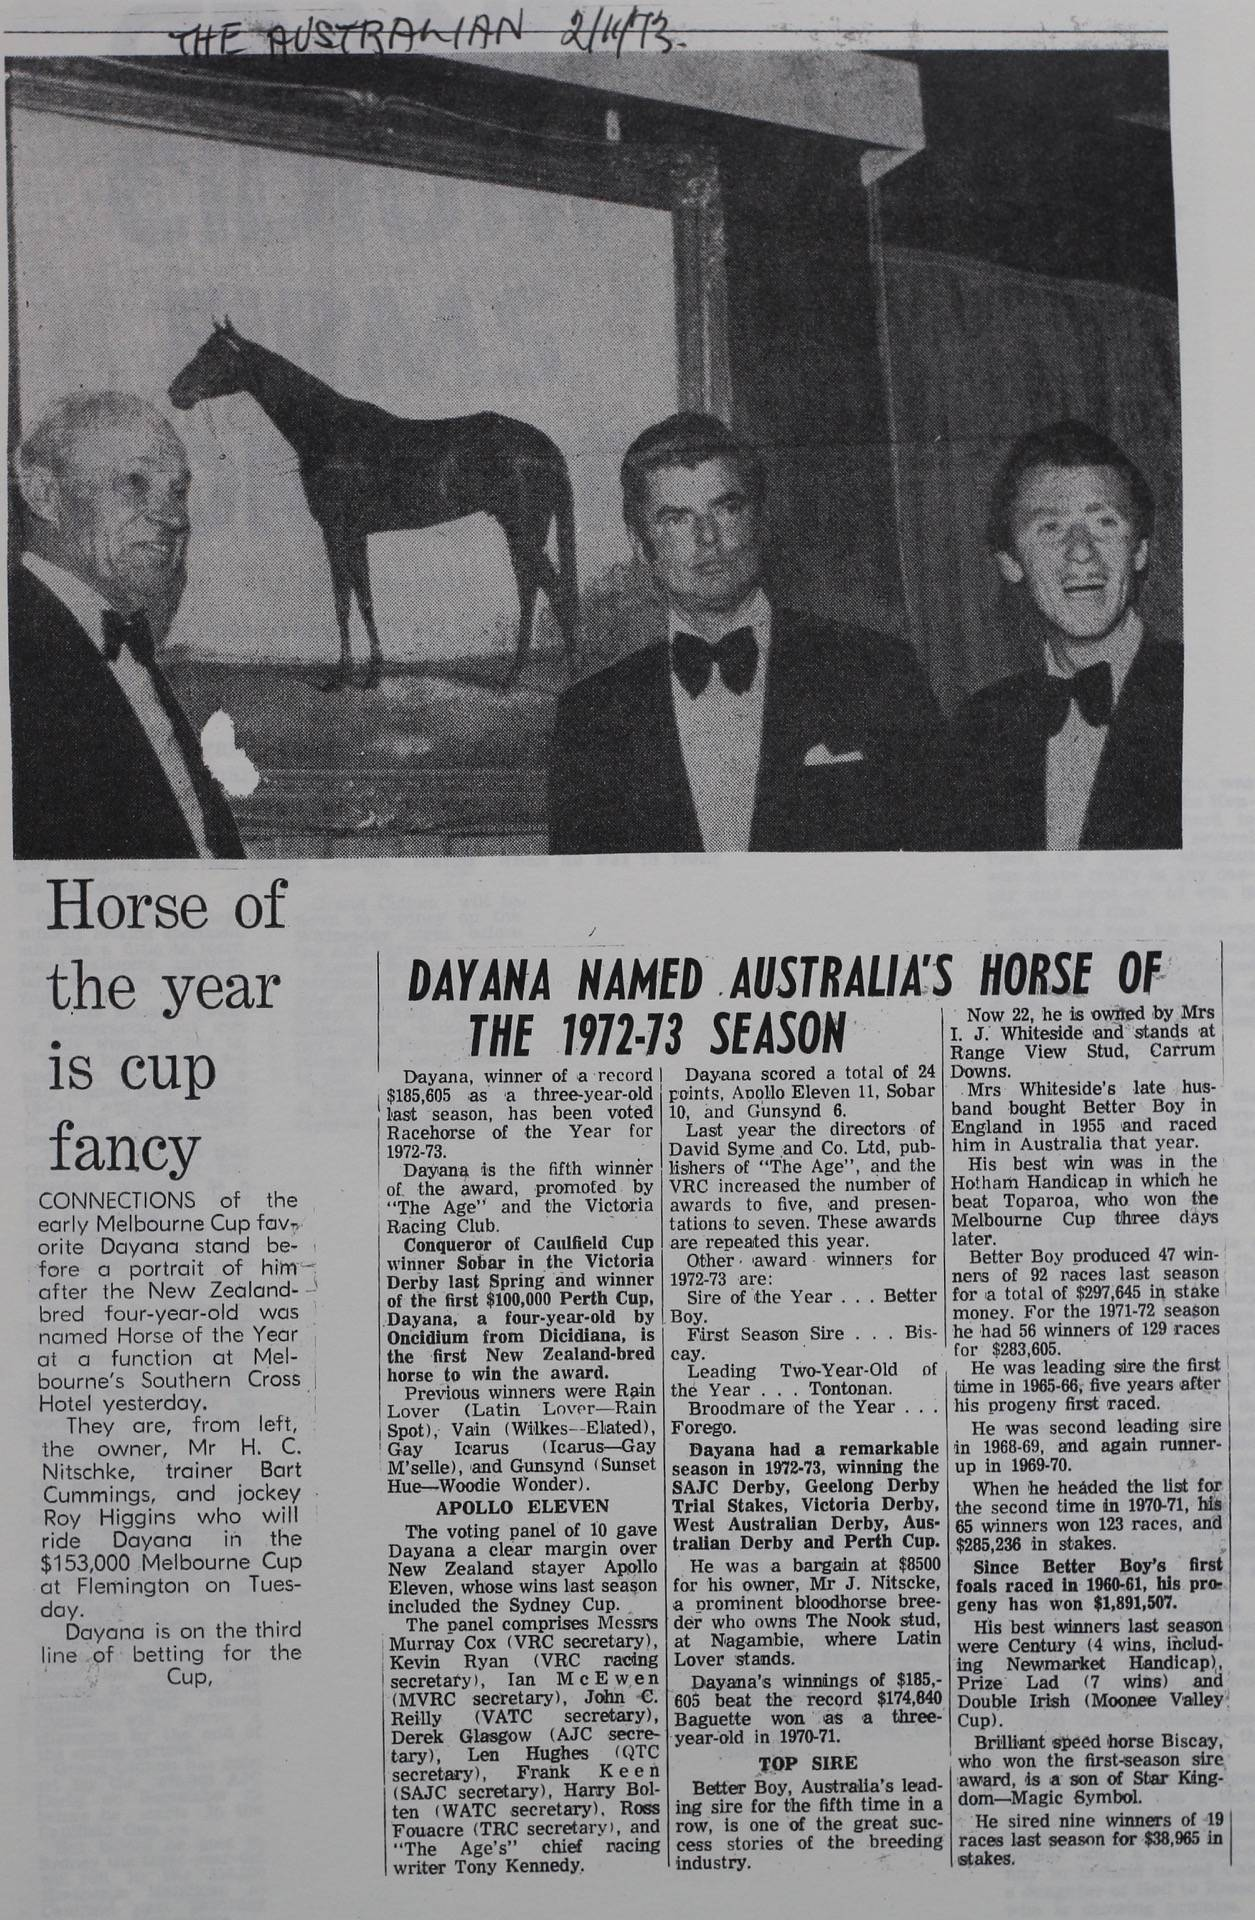 Dayana named Australia's horse of the 1972-73 season